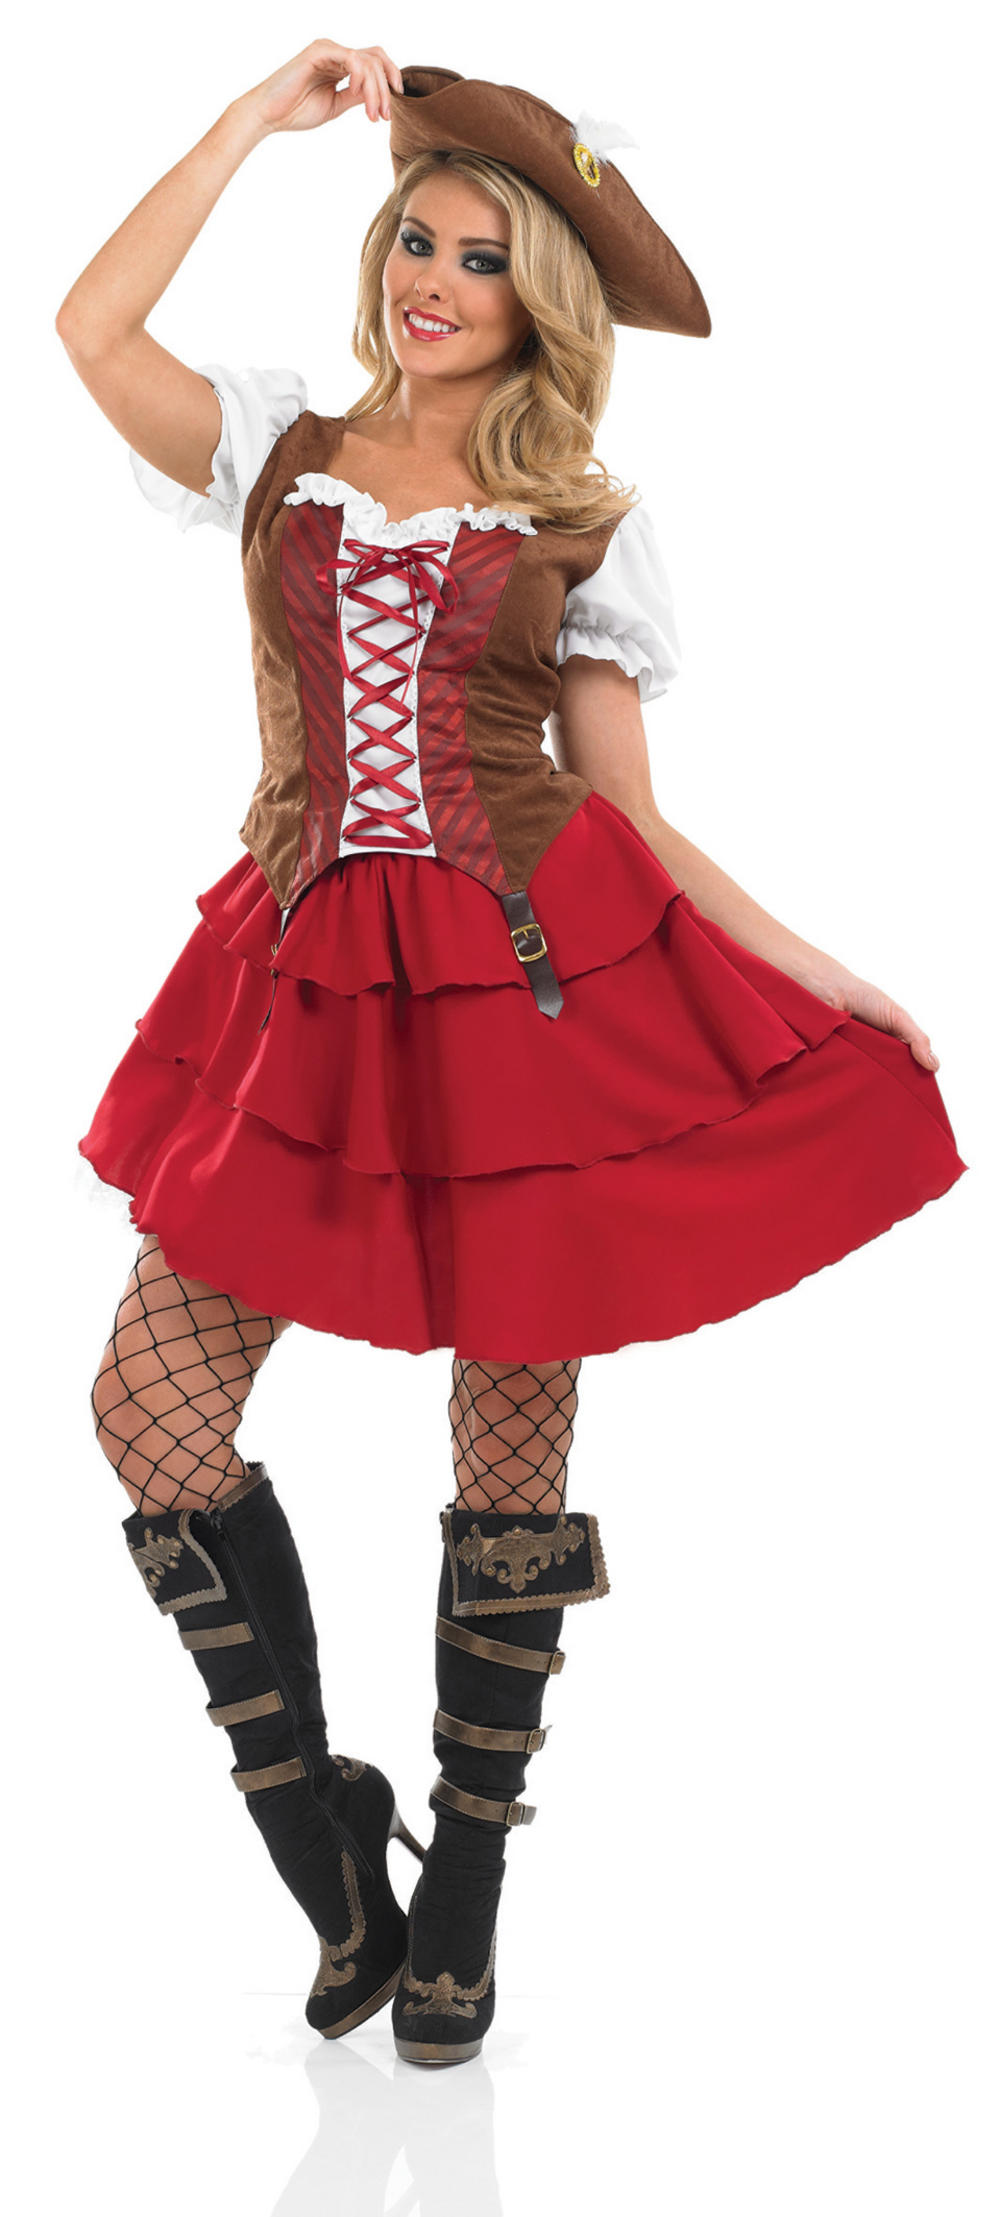 Deck Hand Pirate Girl Costume | Pirate Costumes | Mega ... - photo#20